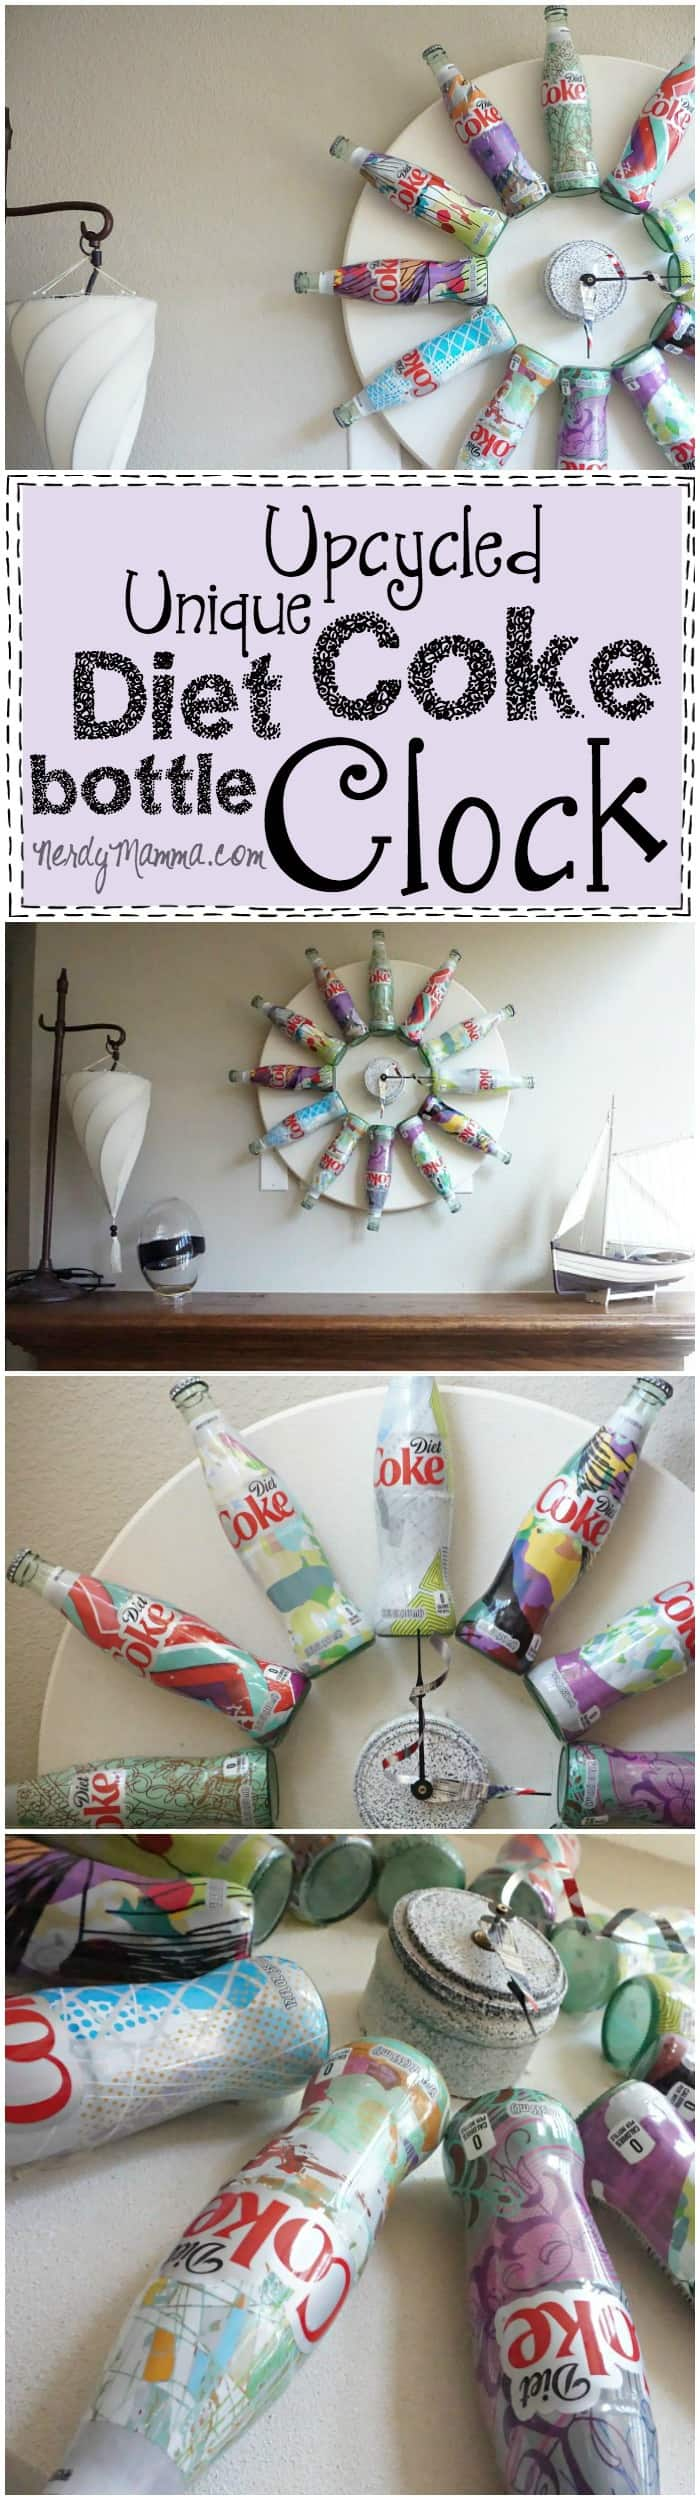 This is such a great idea for using old Coke Bottles! I love how easy the tutorial is and the results are just cool!